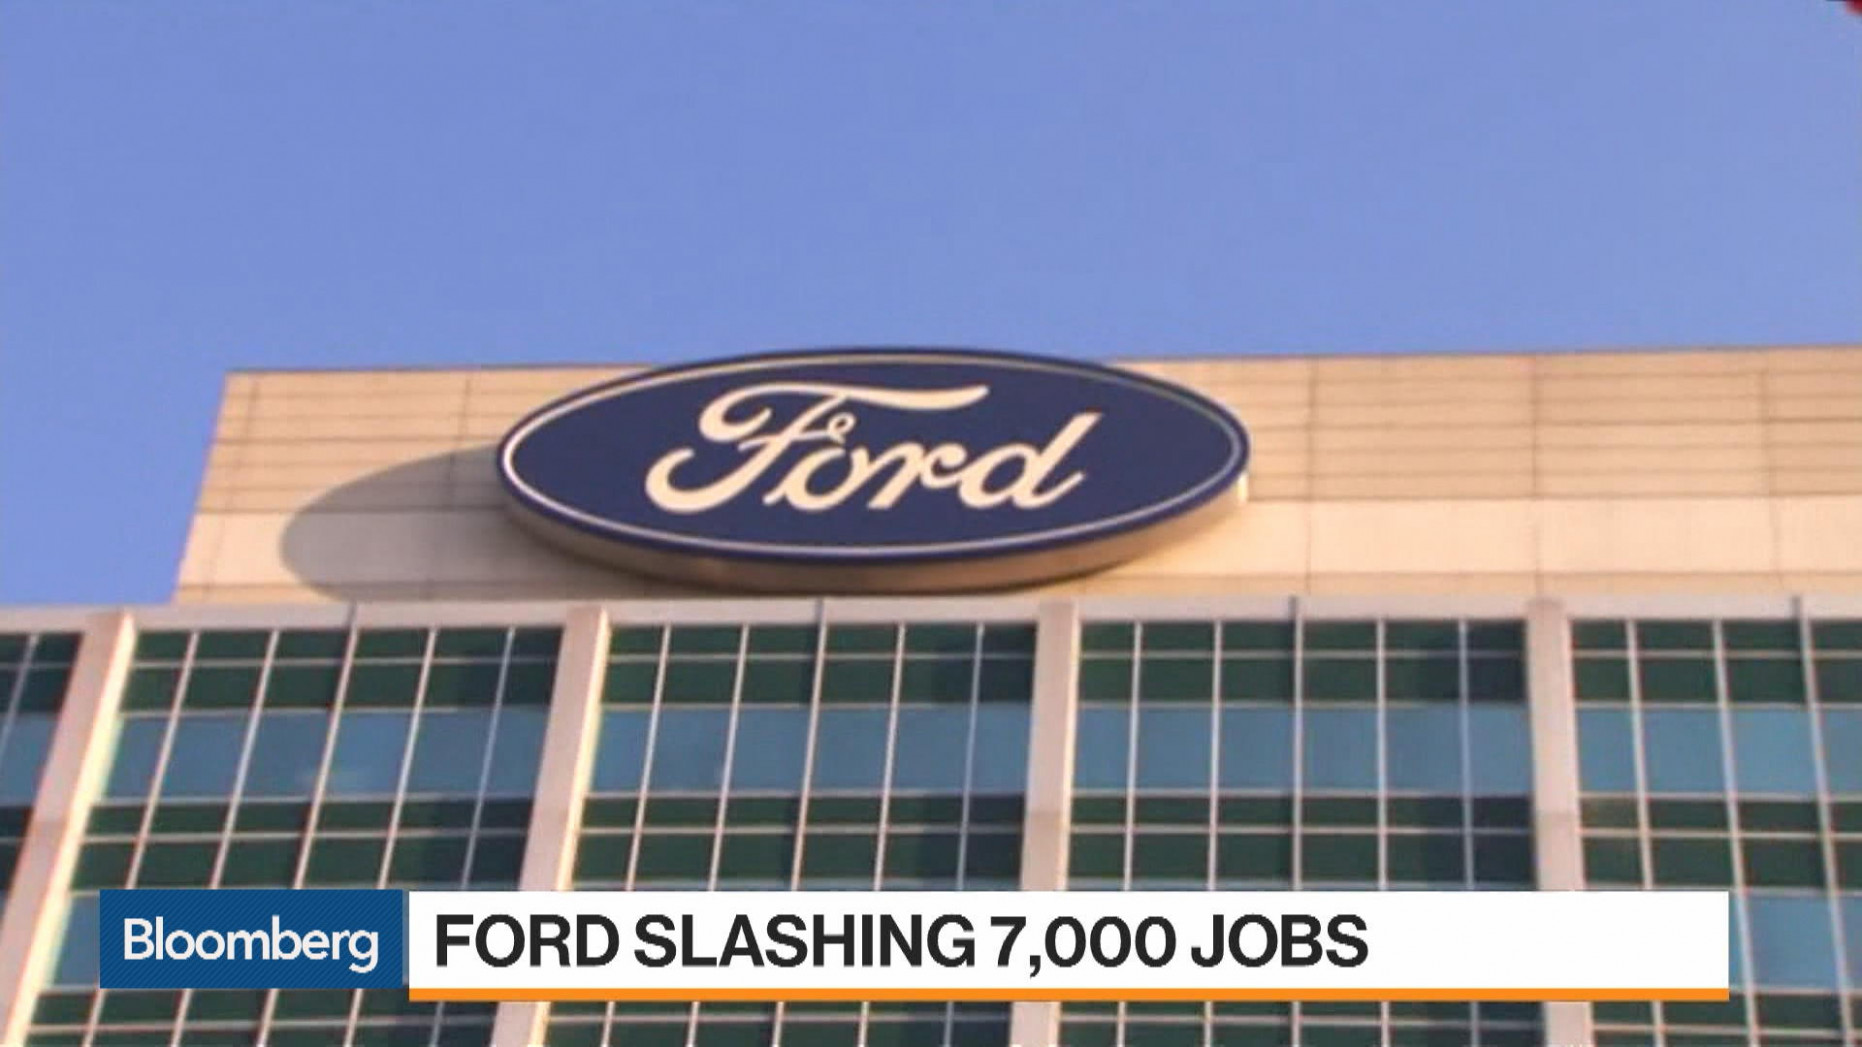 Ford Slashing 8,8 Jobs as Disruption Sweeps Car Industry - Bloomberg - ford job cuts 2020